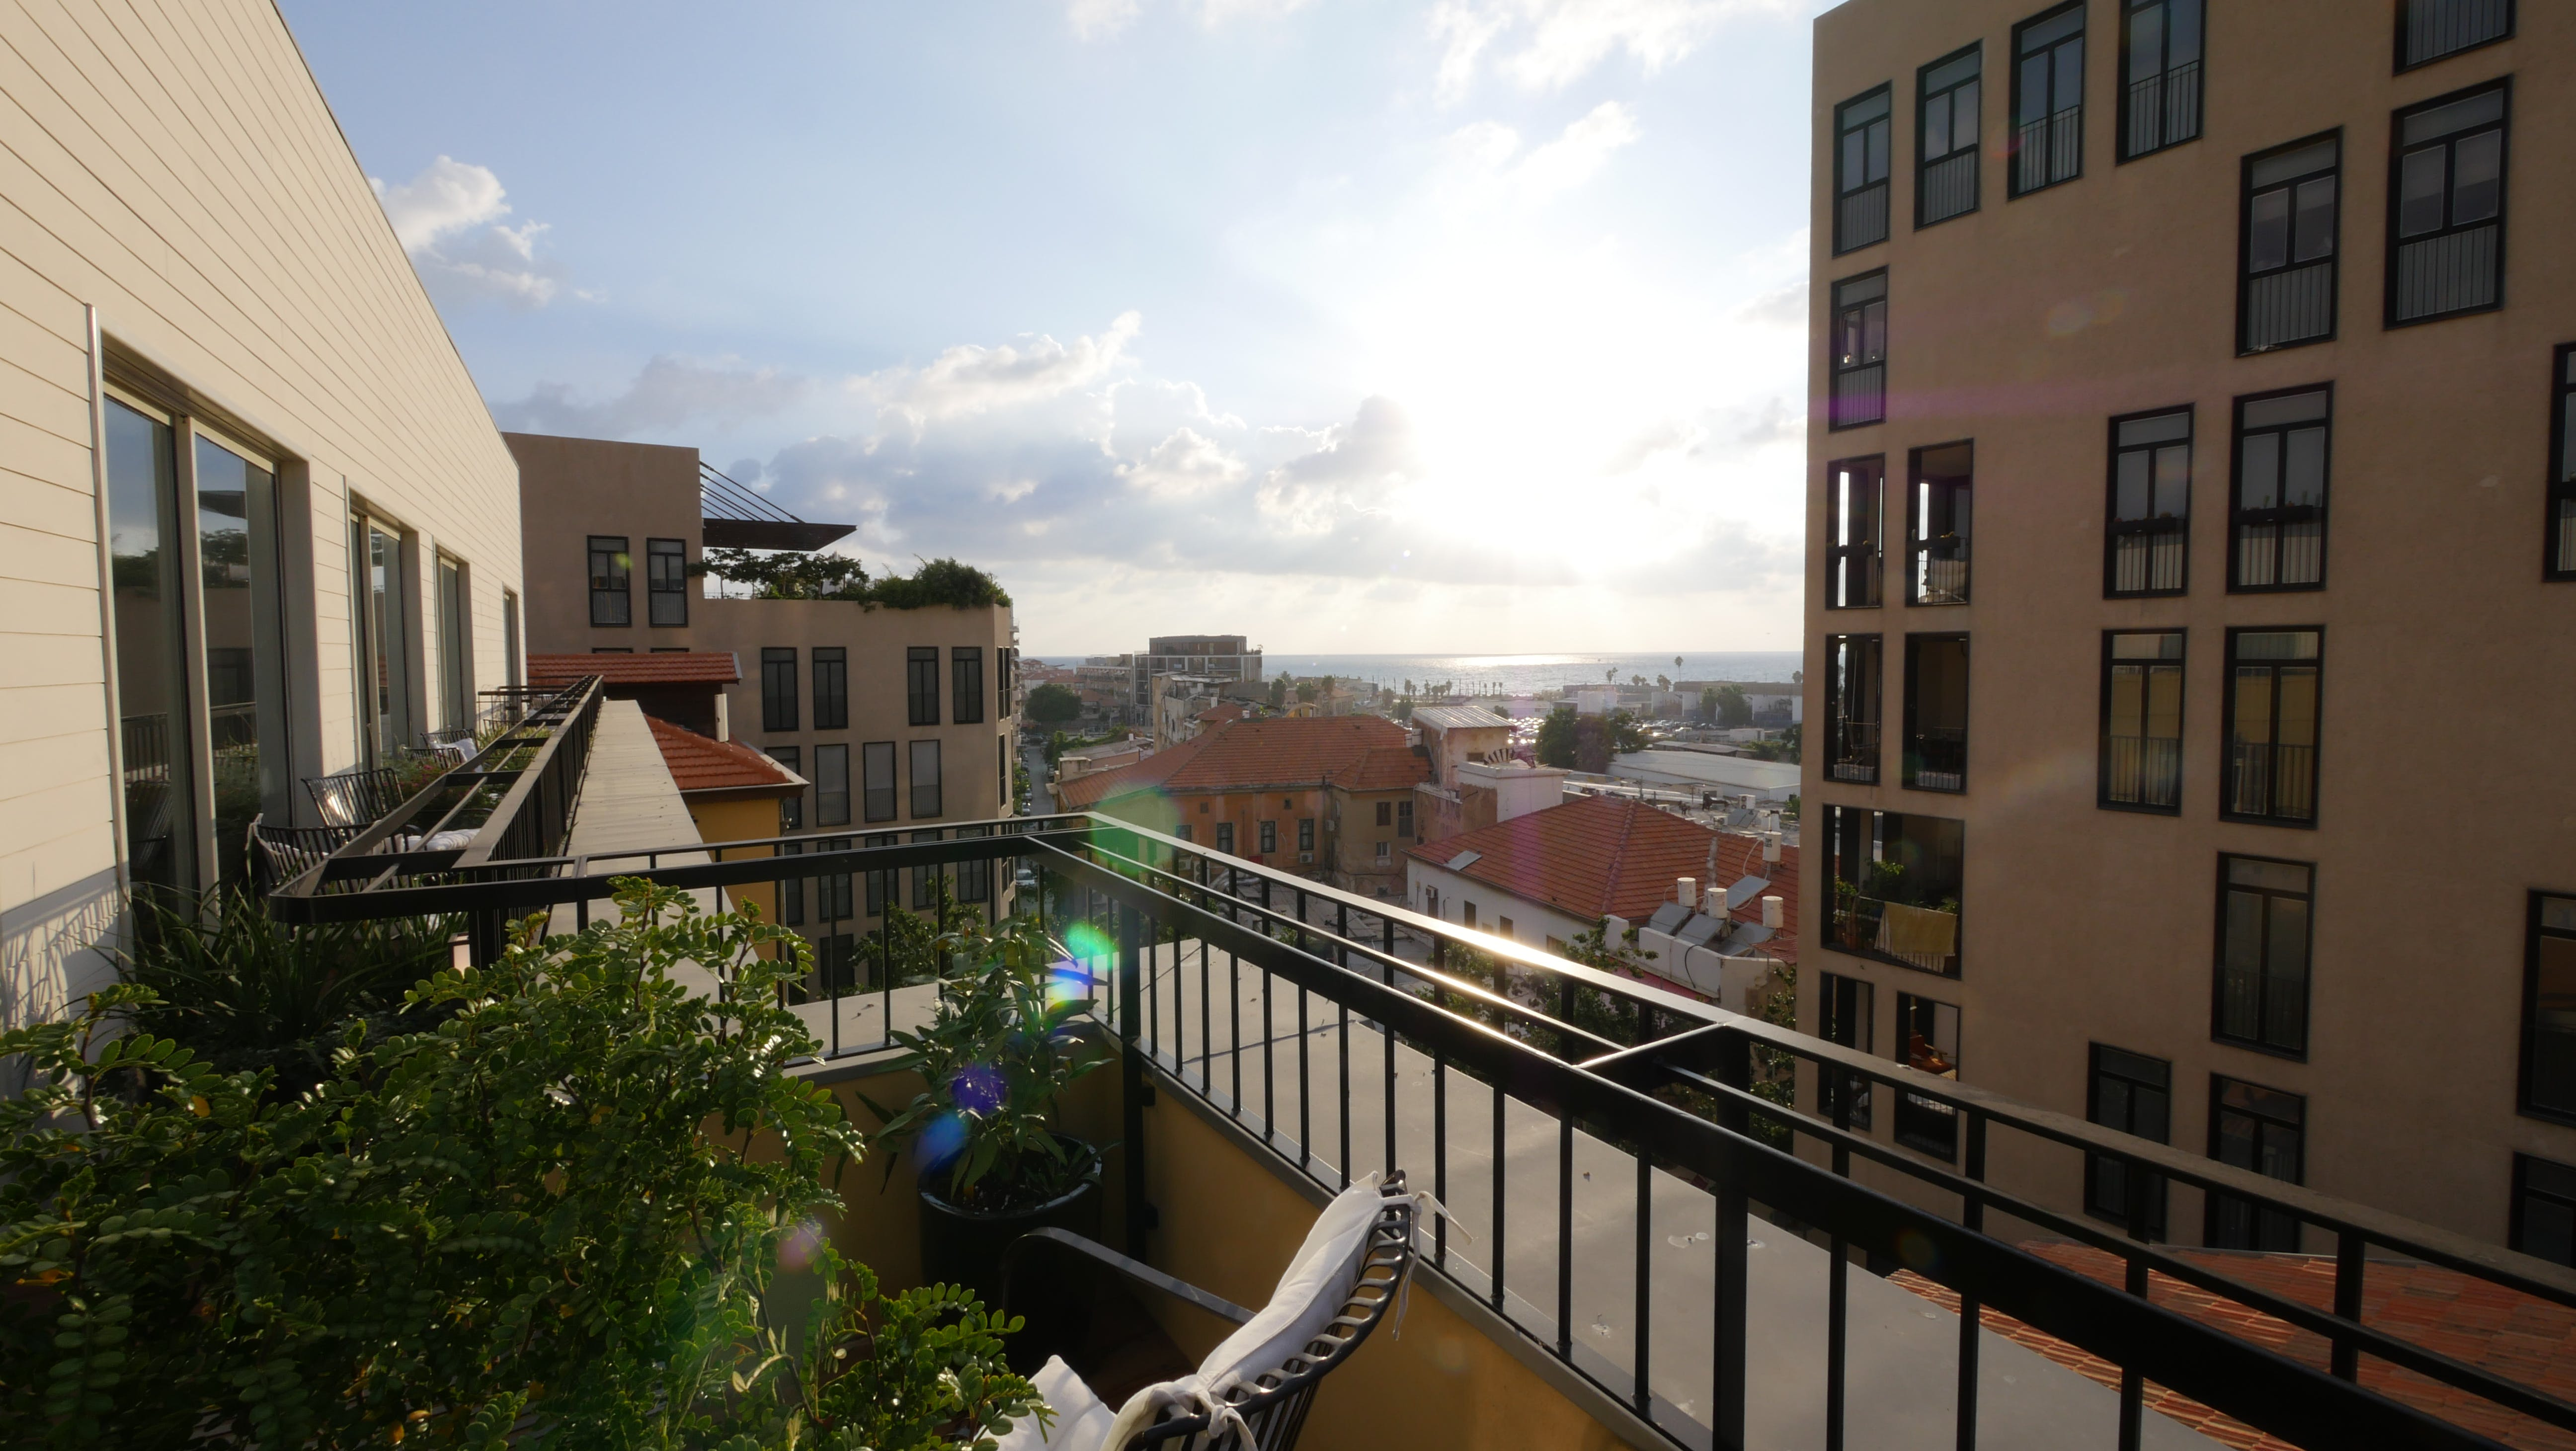 Free stock photo of city, city view, Israel, rooftop